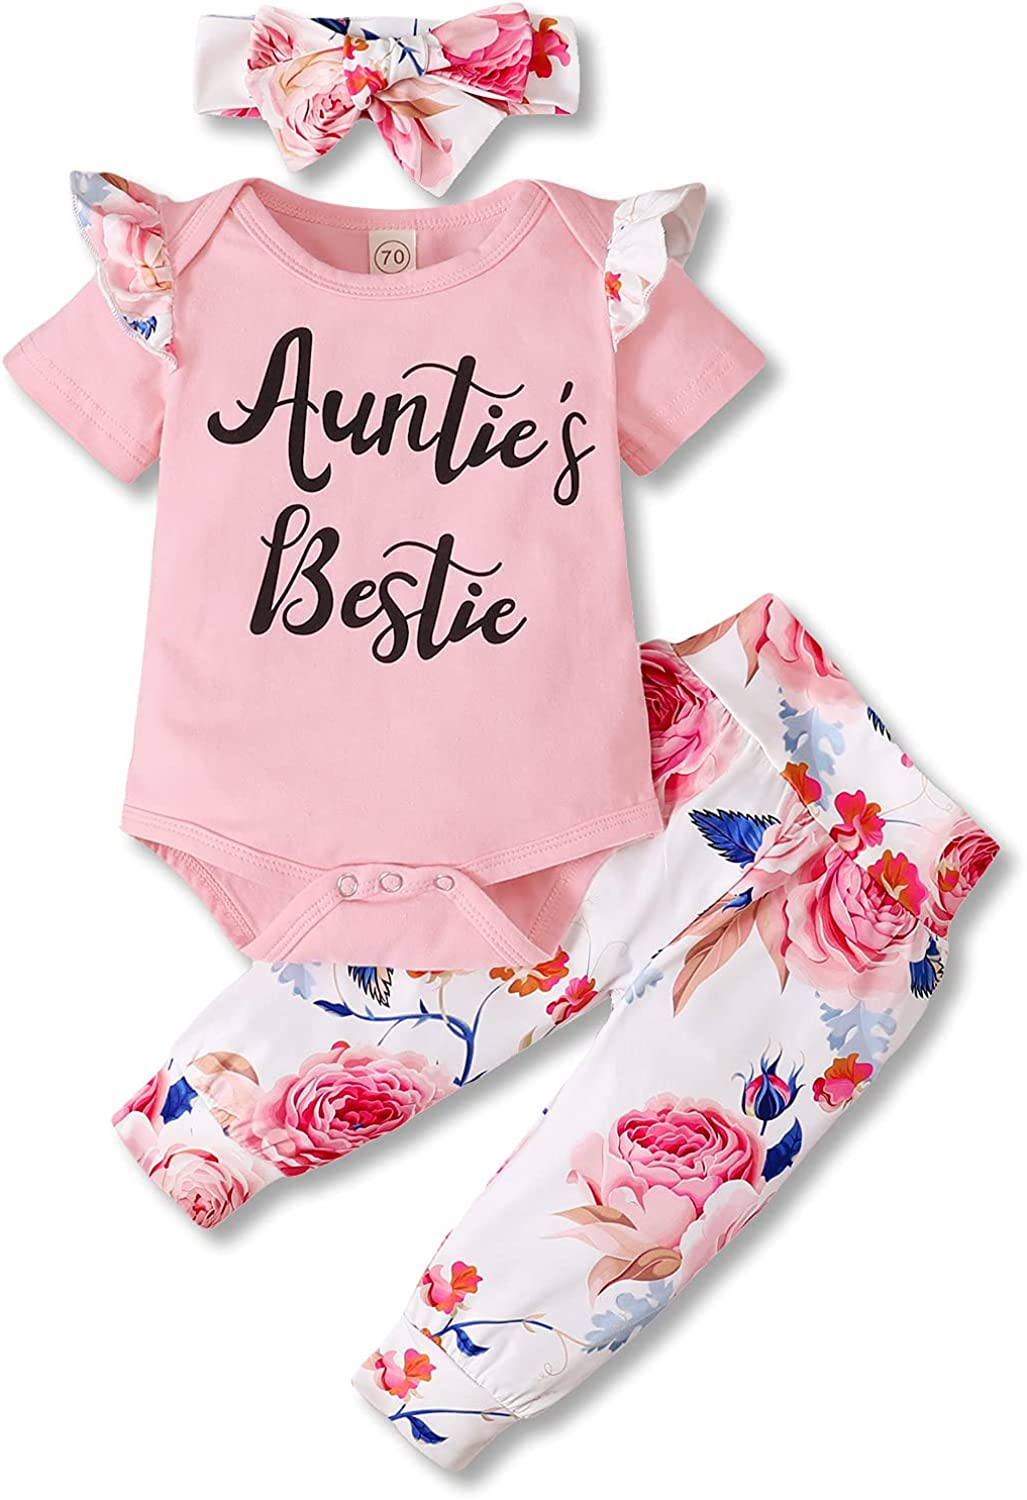 Auntie's Bestie Newborn Baby Girl Clothes Set Ruffle Short Sleeve Romper Floral Pants Headband Outfits Set